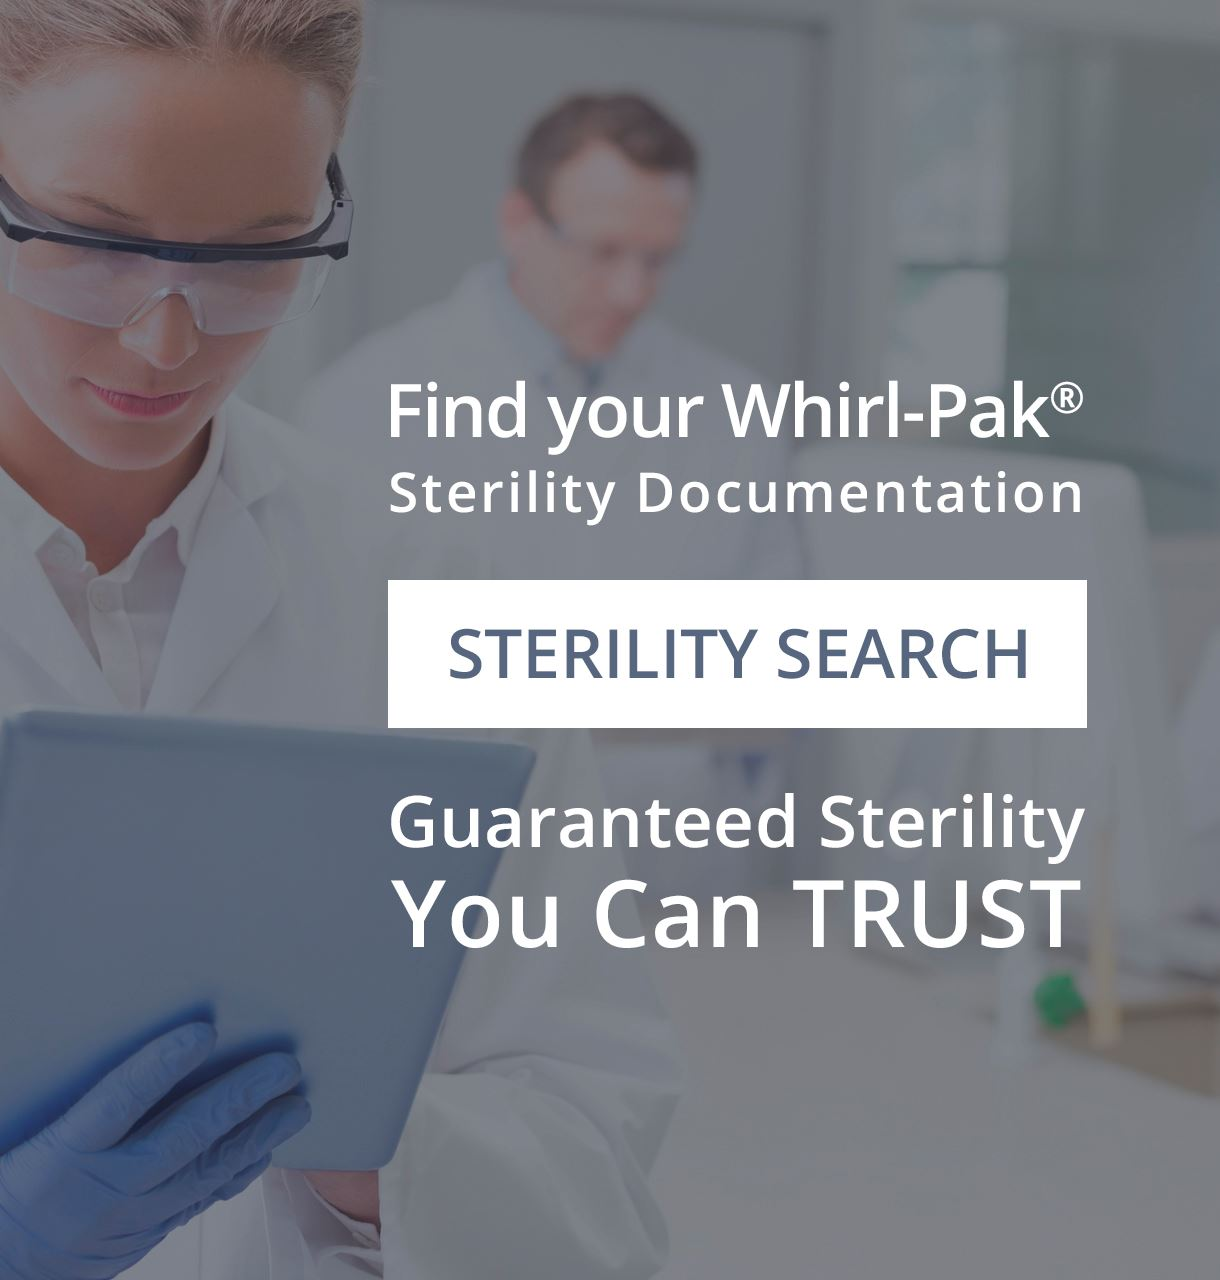 Find a Sterility Document